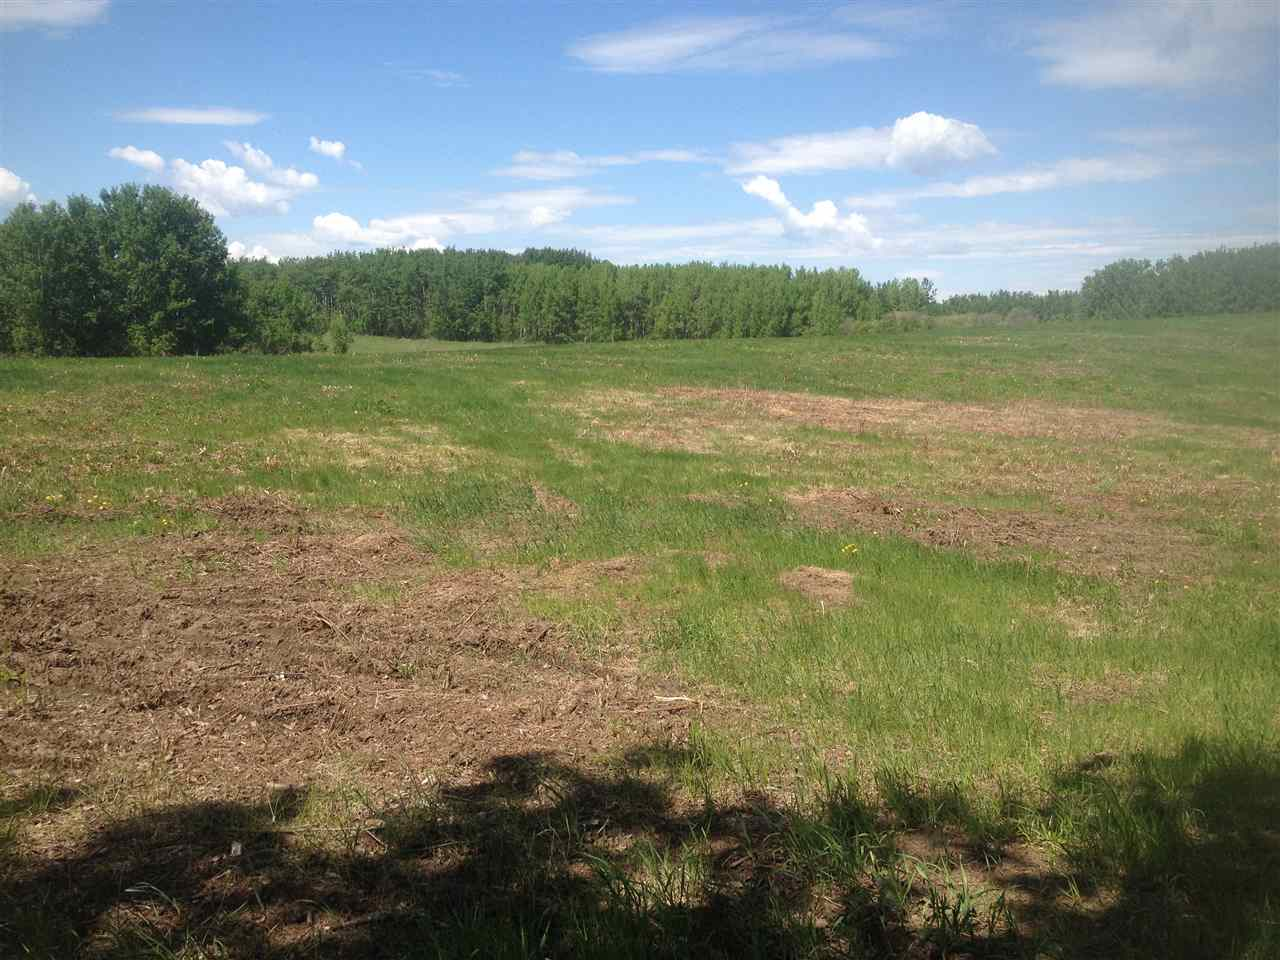 Photo 7: 52502 Range Road 22A: Rural Parkland County Rural Land/Vacant Lot for sale : MLS® # E4069524